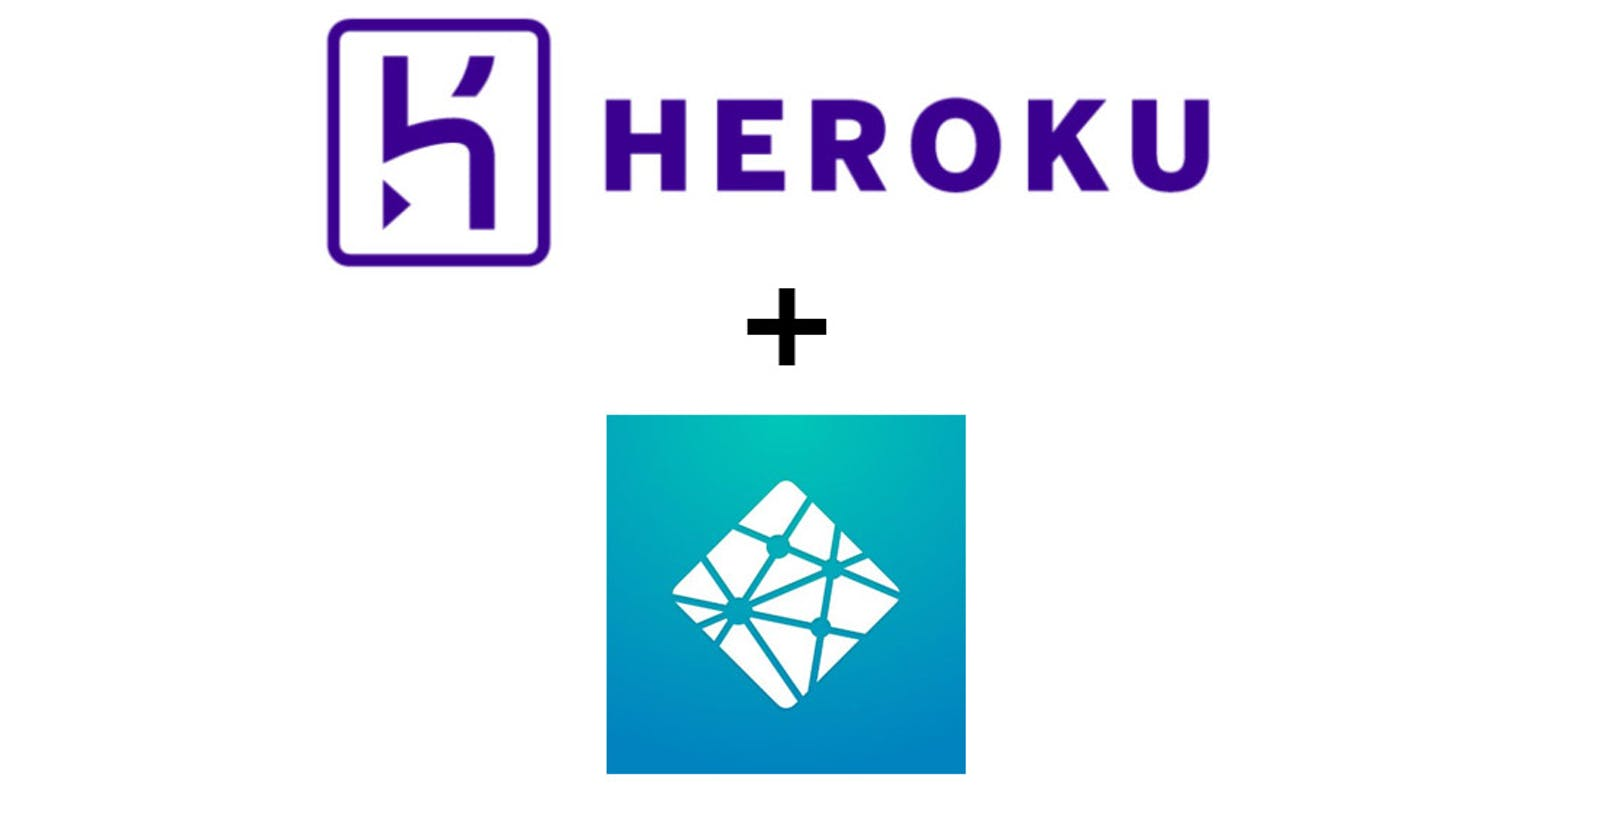 Deploying your single-repo, Fullstack Node and React app on Heroku and Netlify